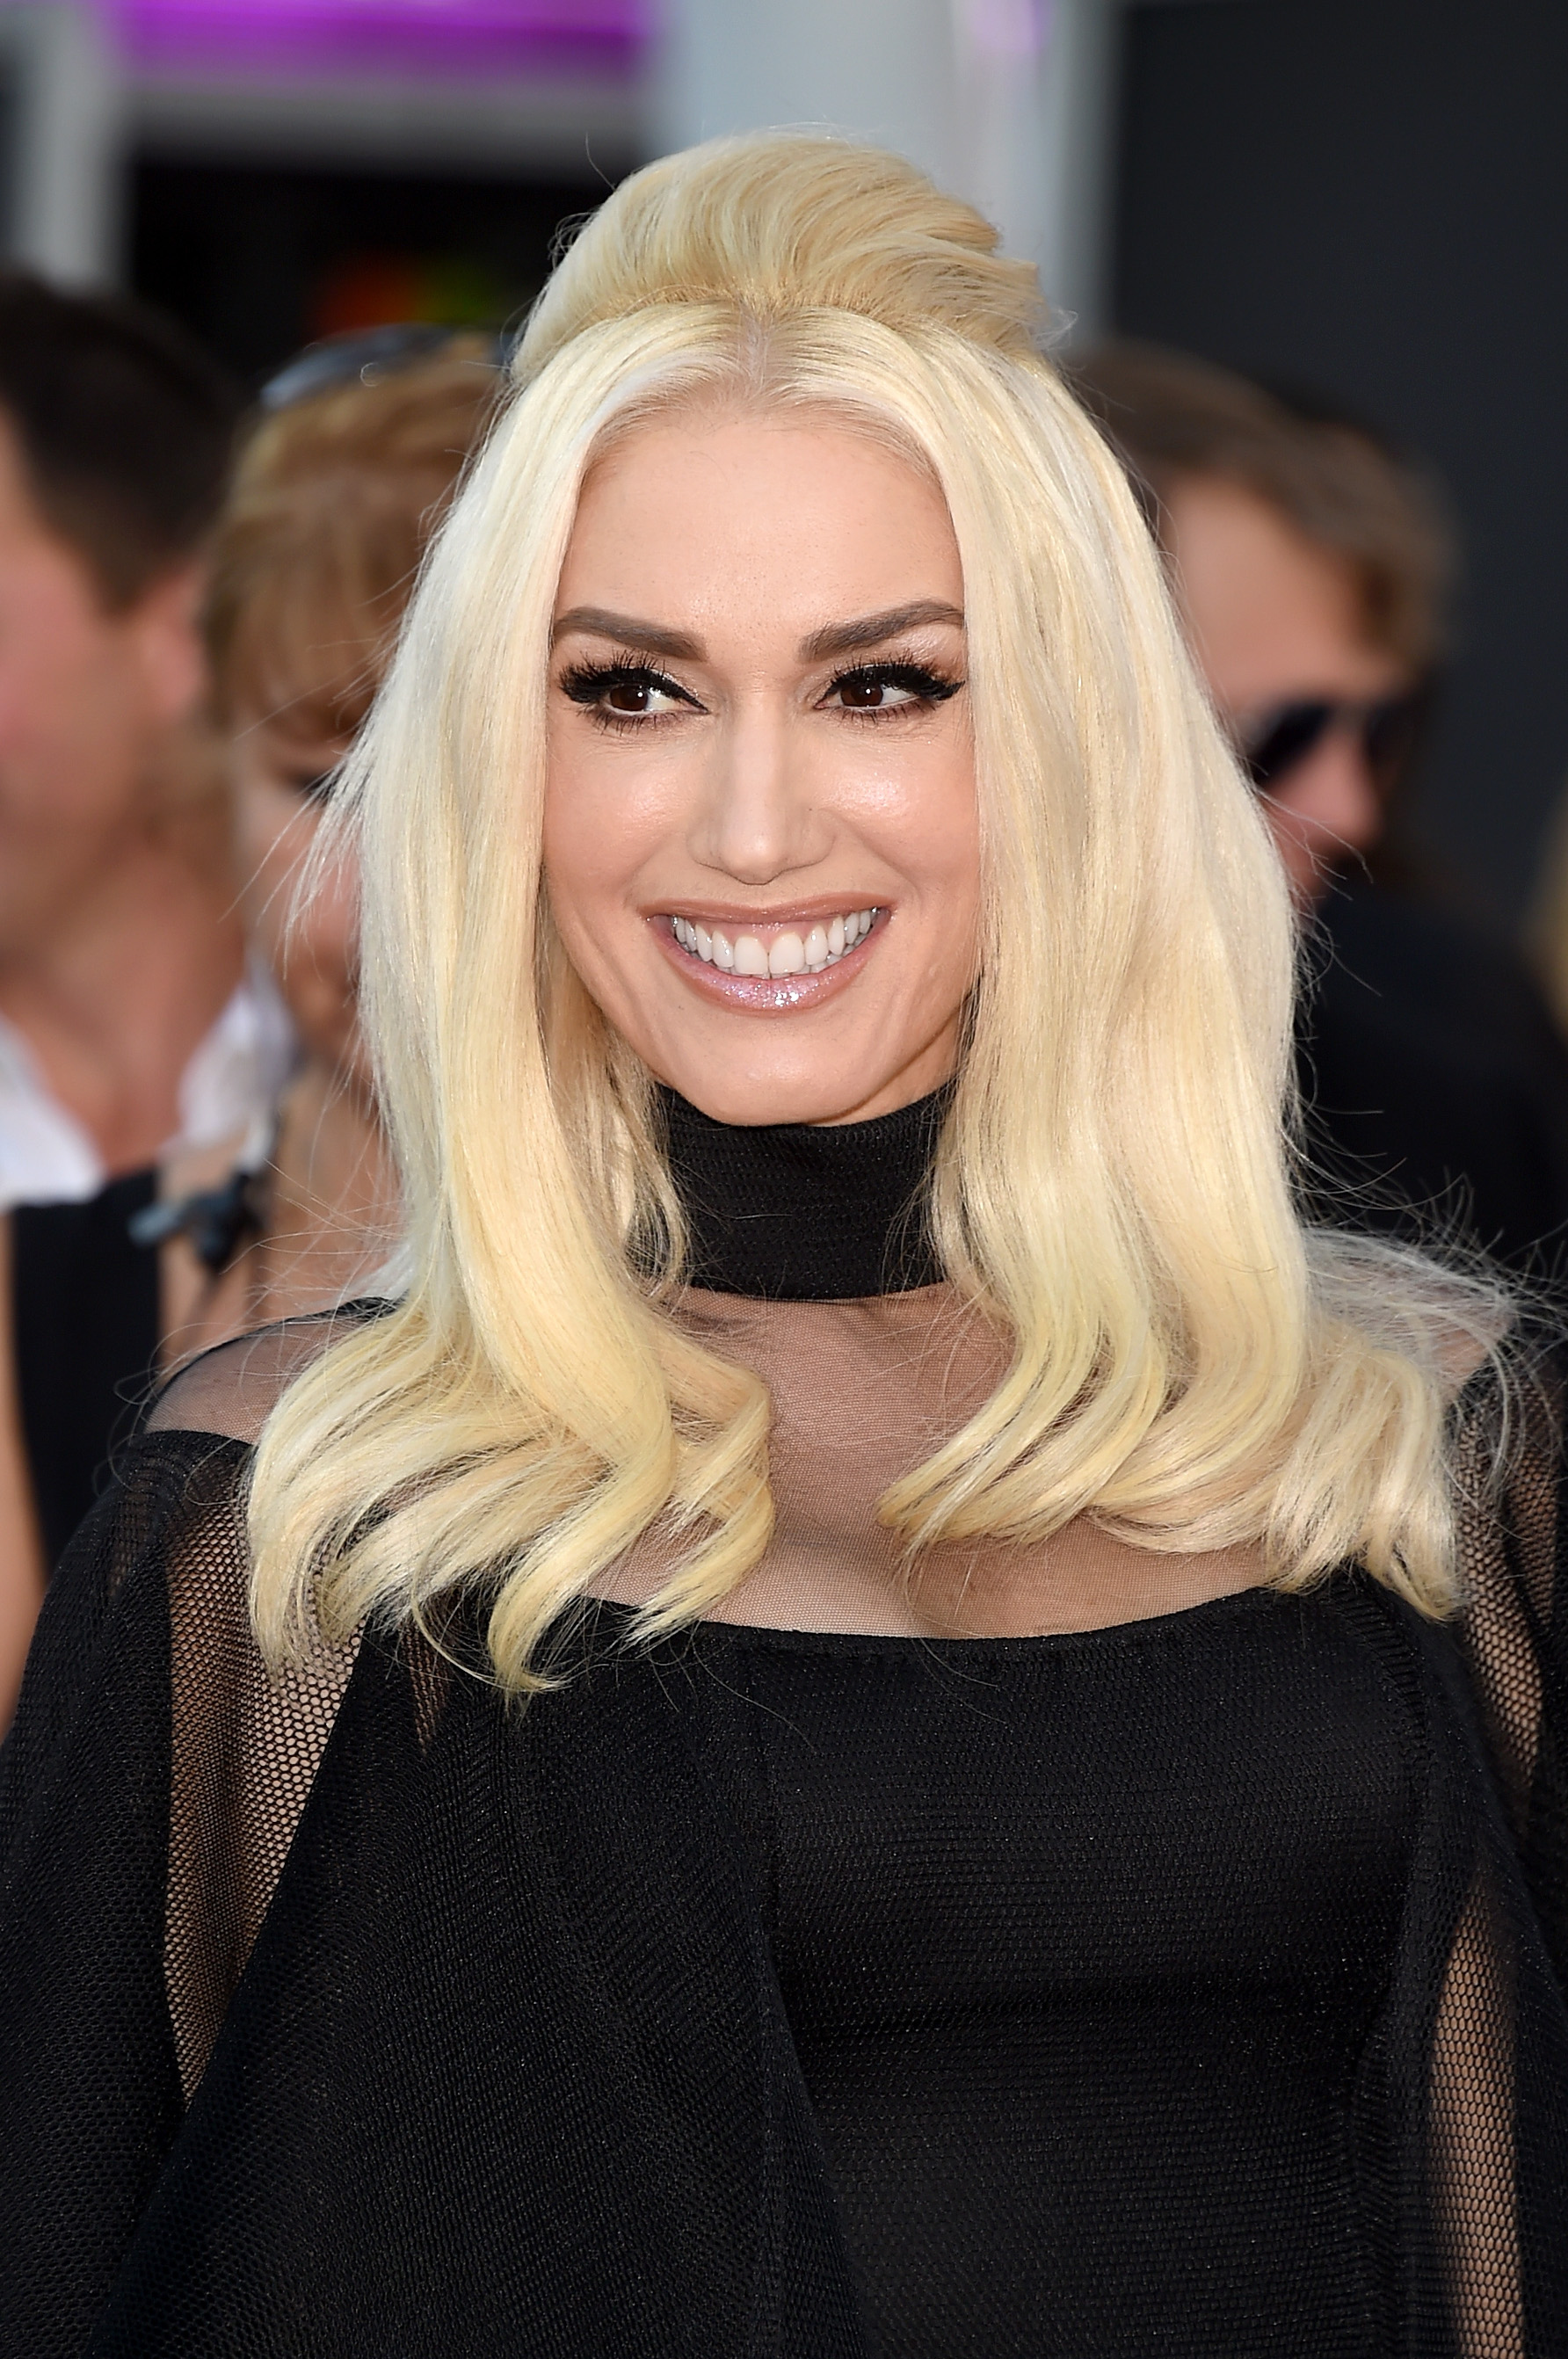 Pictures Of Gwen Stefani Pictures Of Celebrities